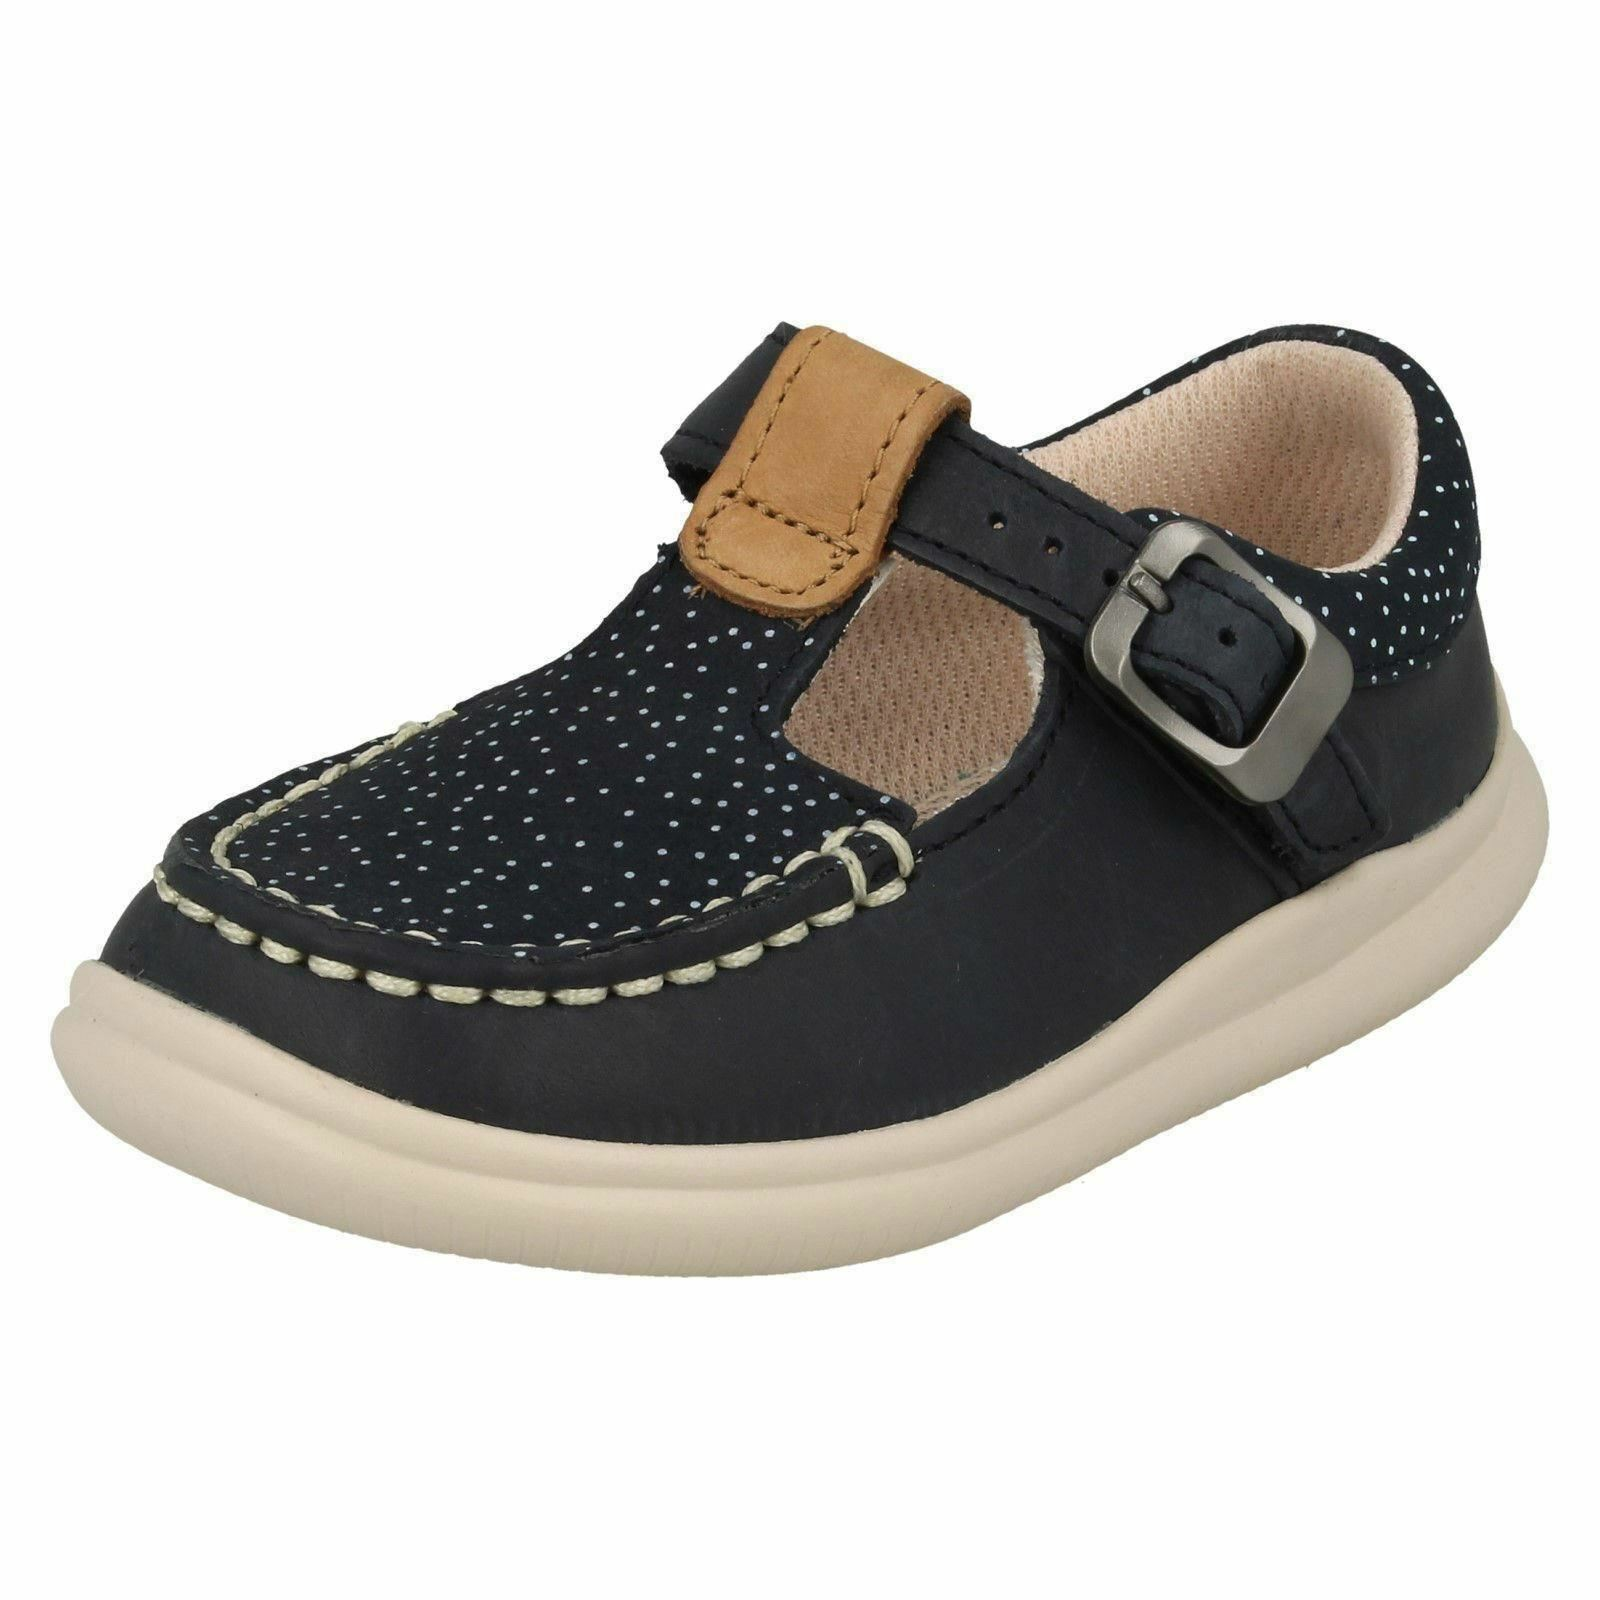 Girls Clarks Cloud Rosa Navy Leather First Walking Shoes